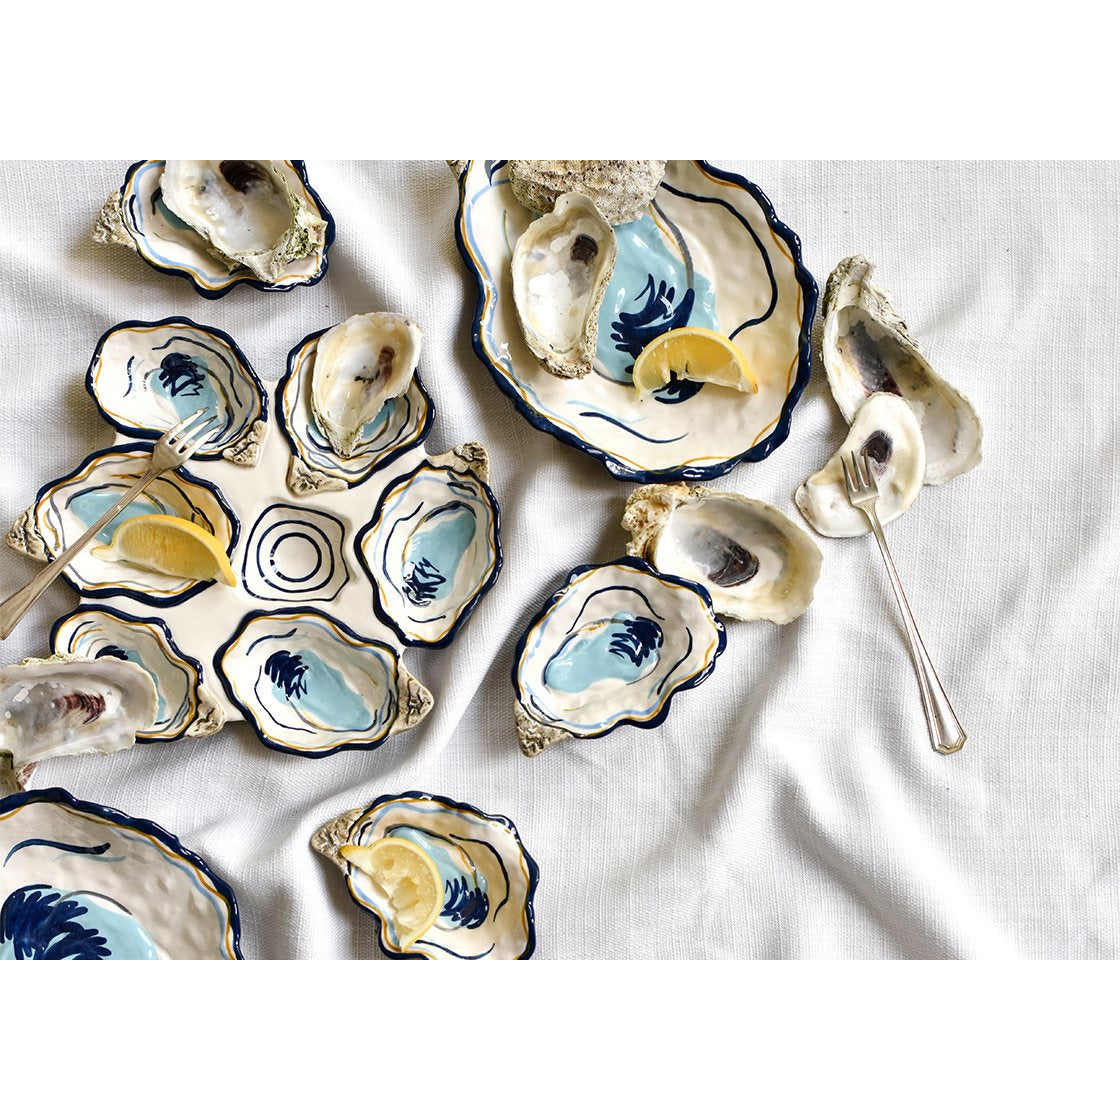 Coton Colors -  Oyster Half Dozen Platter collection